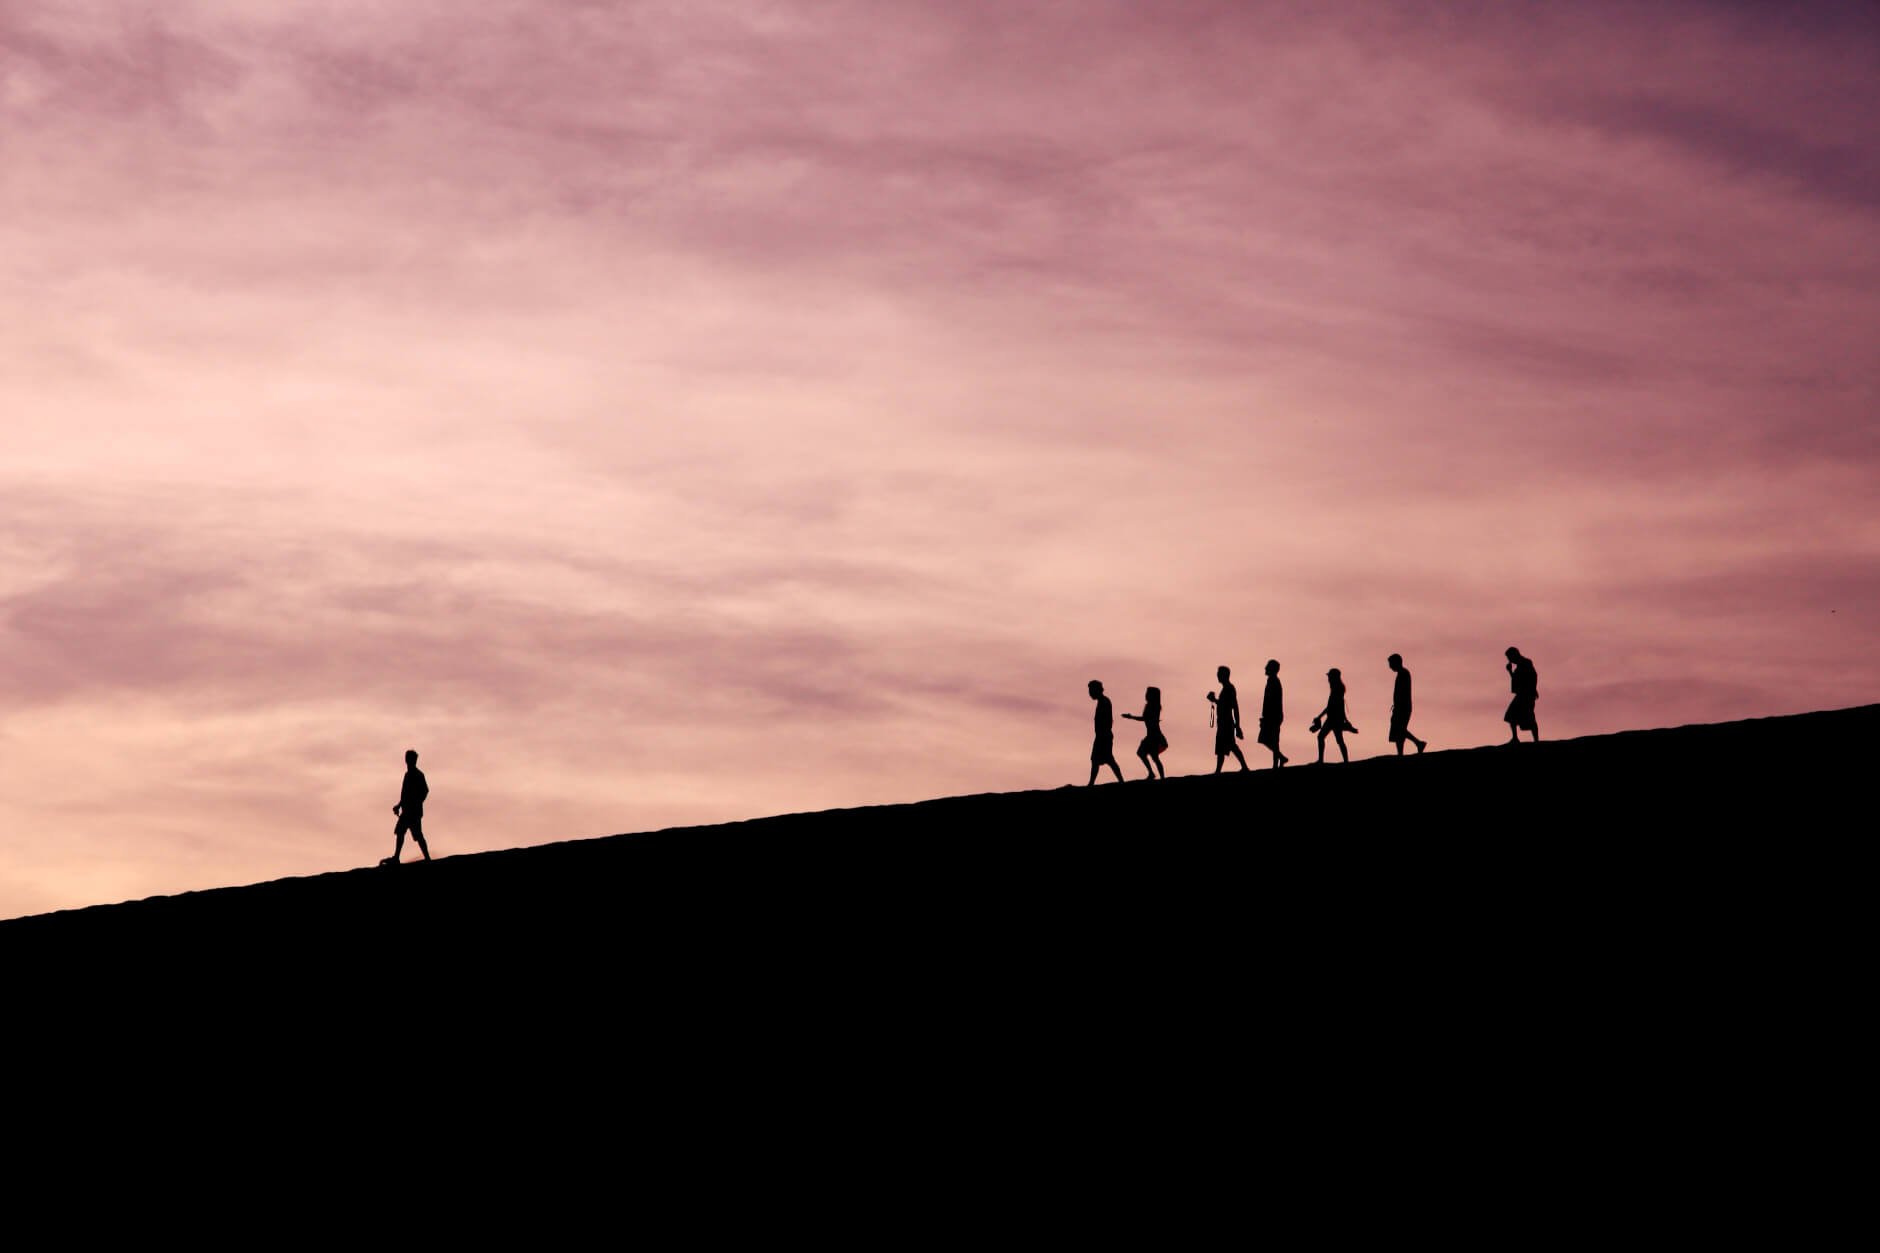 people following a leader down a hill at sunset